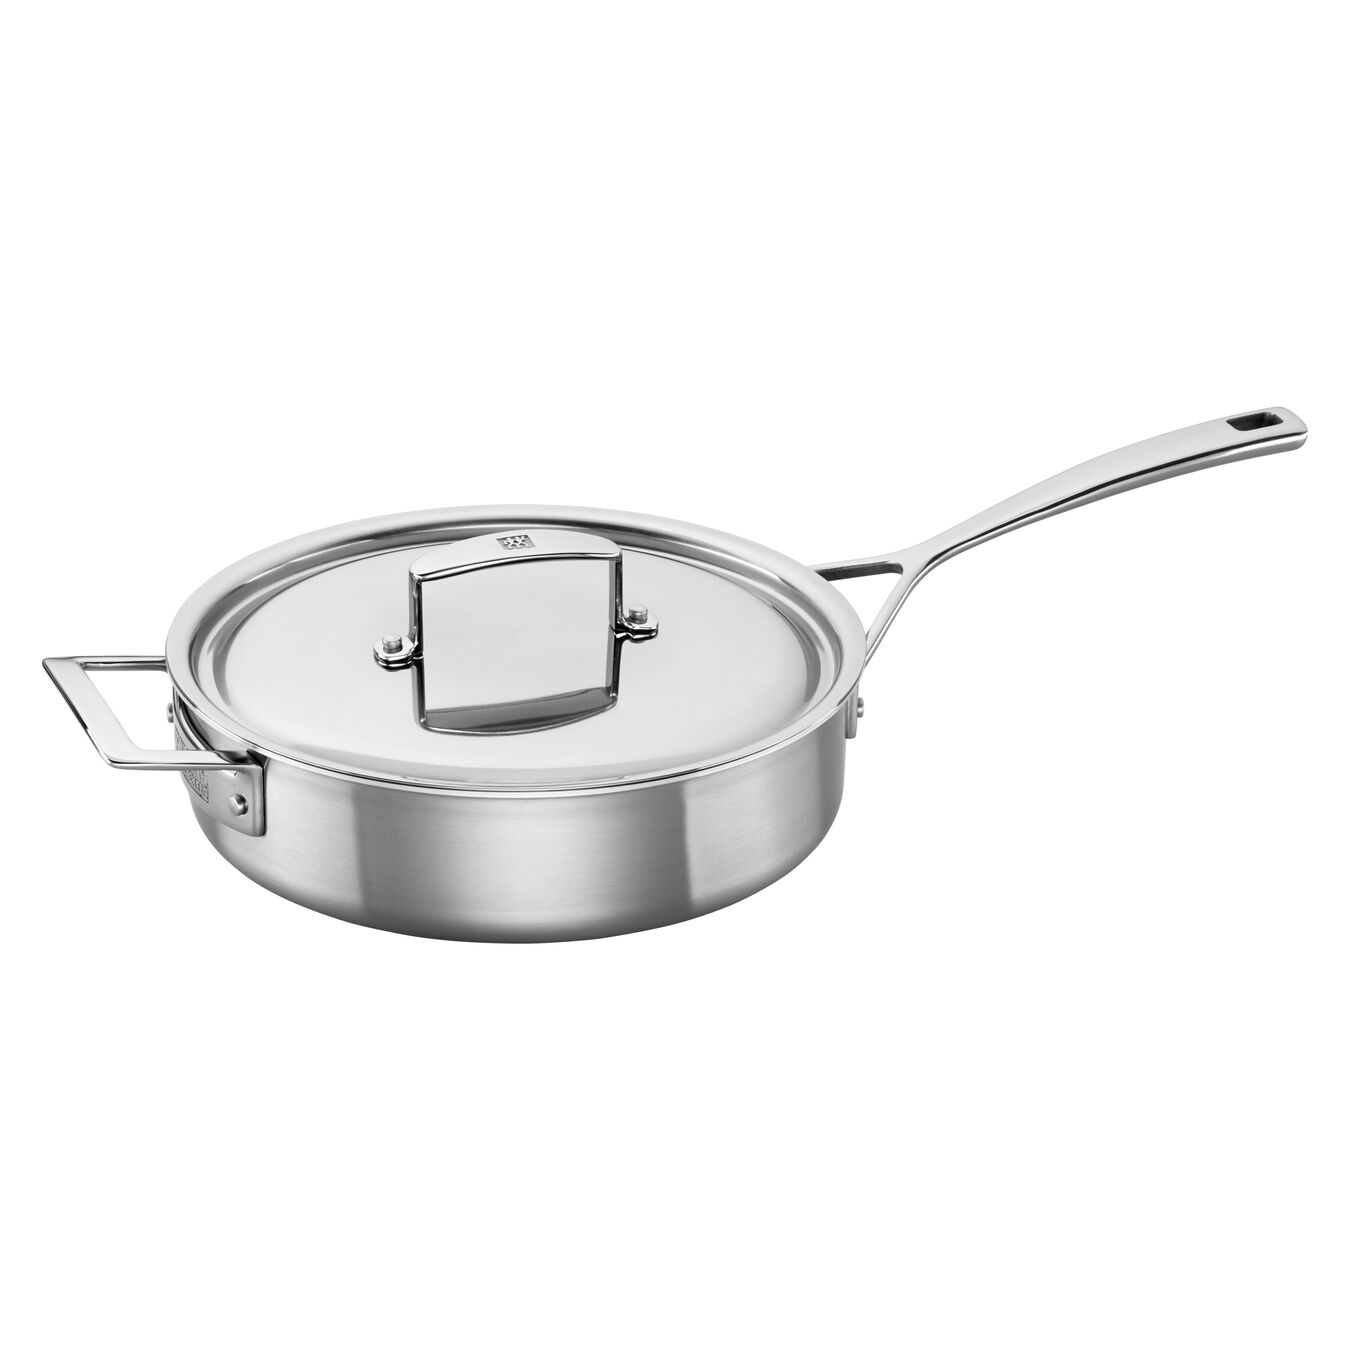 Stainless Steel 3-Qt. Saute Pan,,large 1